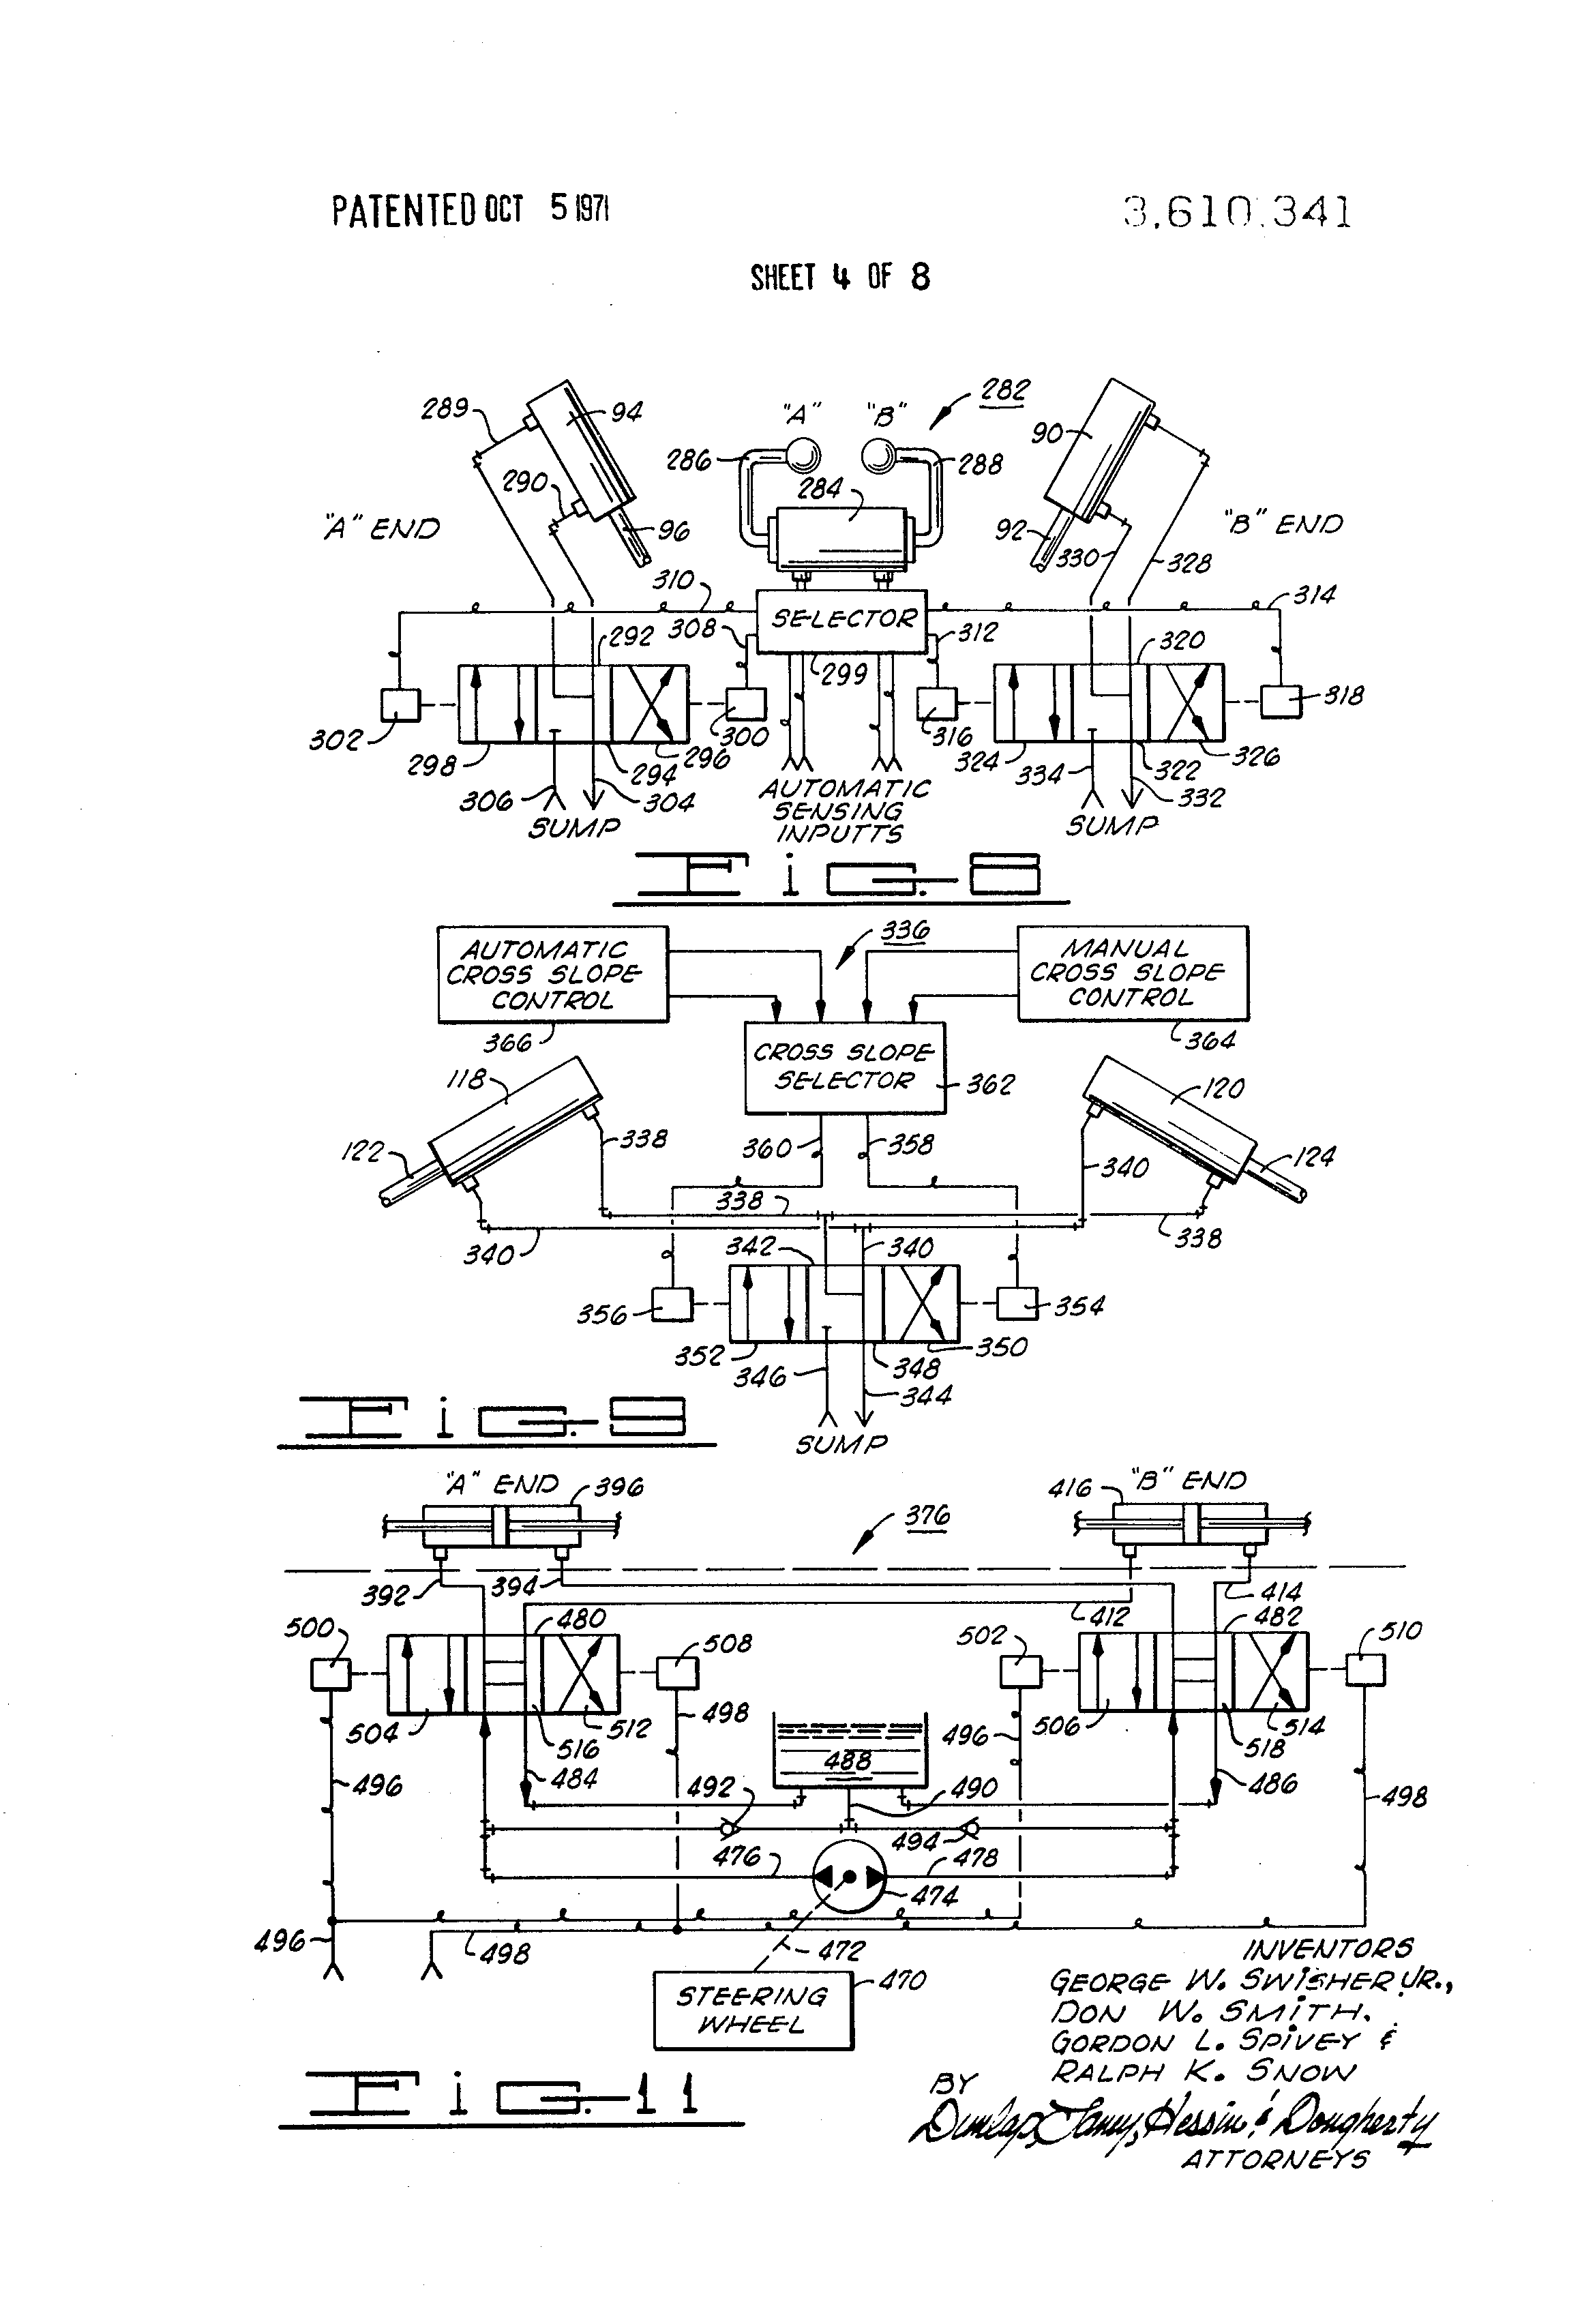 Ih 574 Wiring Diagram 21 Images Diagrams 584 Us3610341 4 International 234 Tractor Simonand At Cita